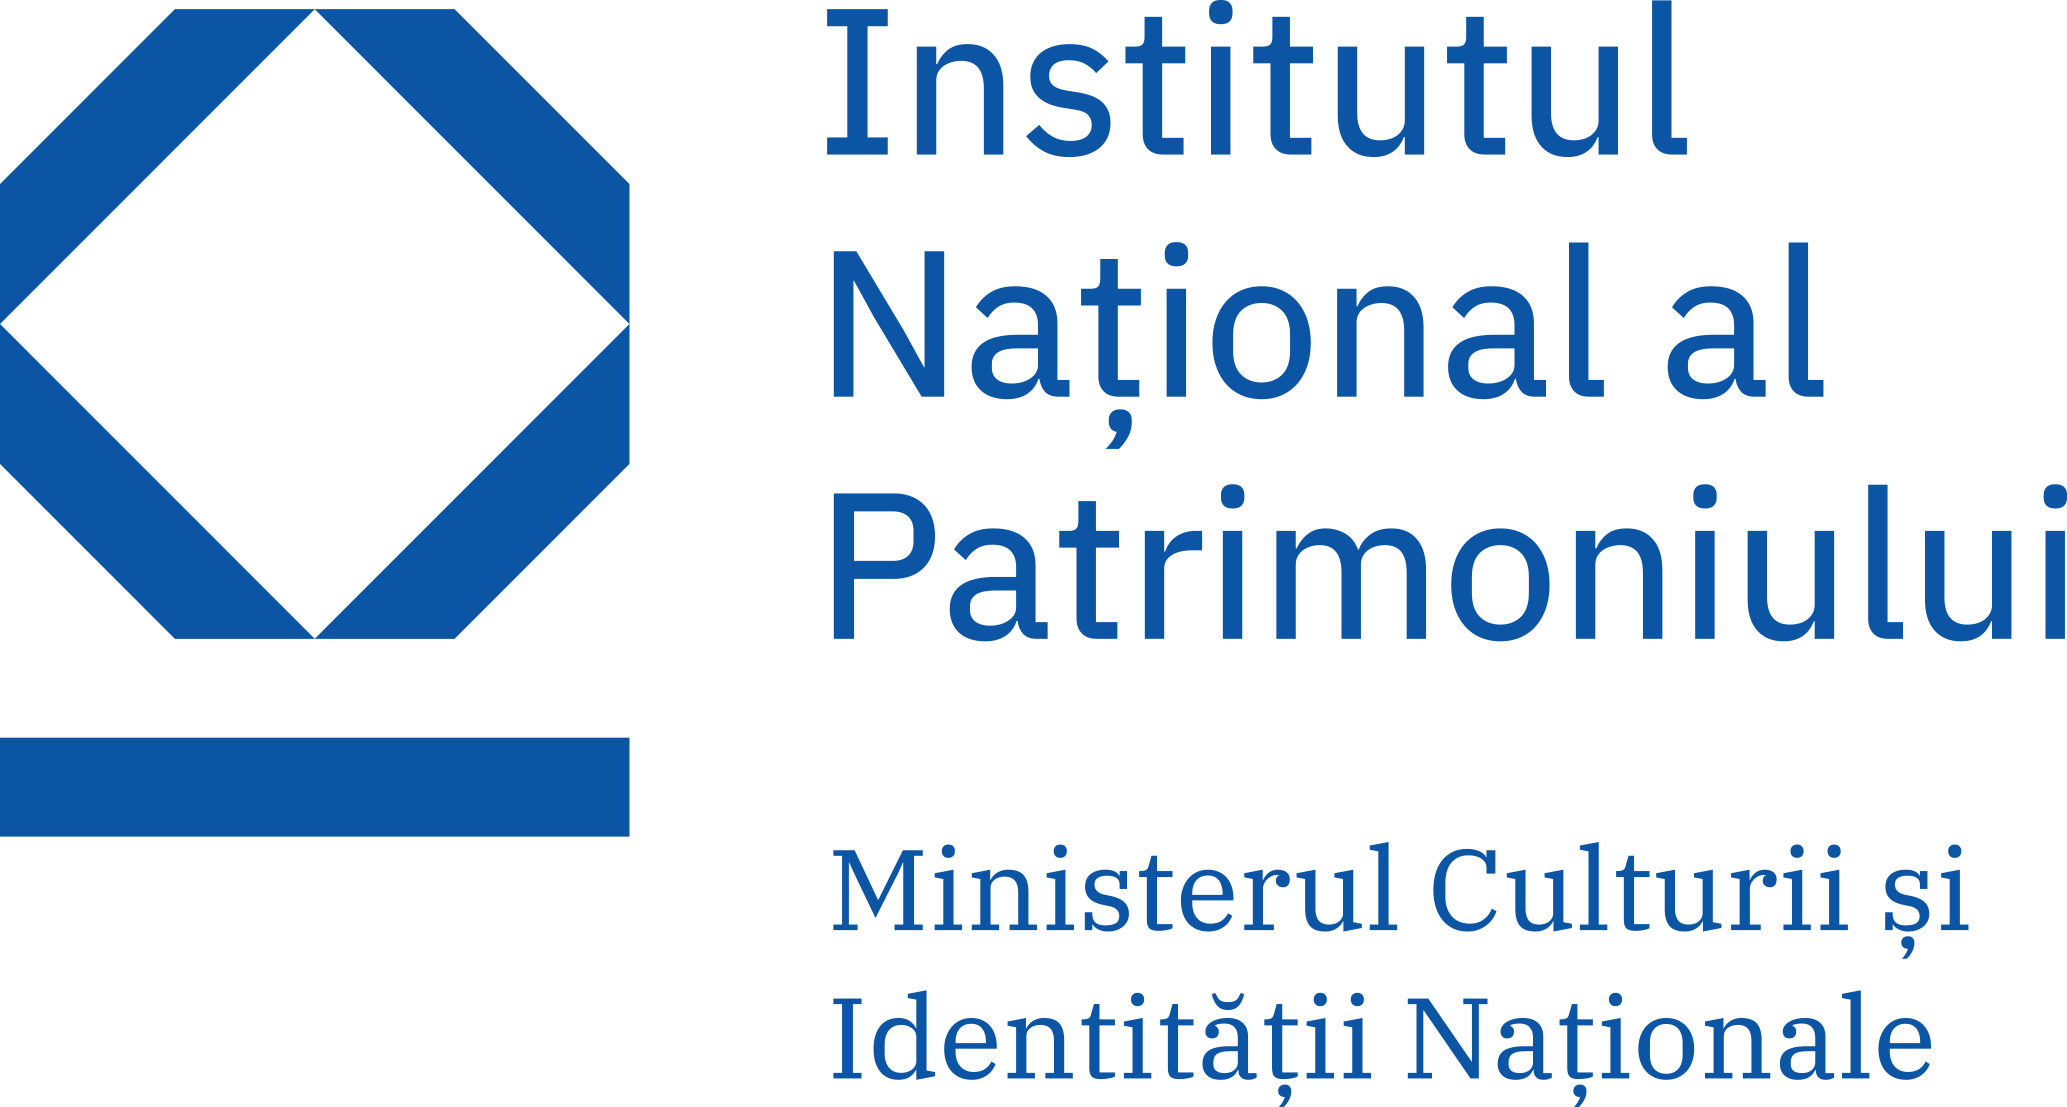 The National Heritage Institute of Romania logo